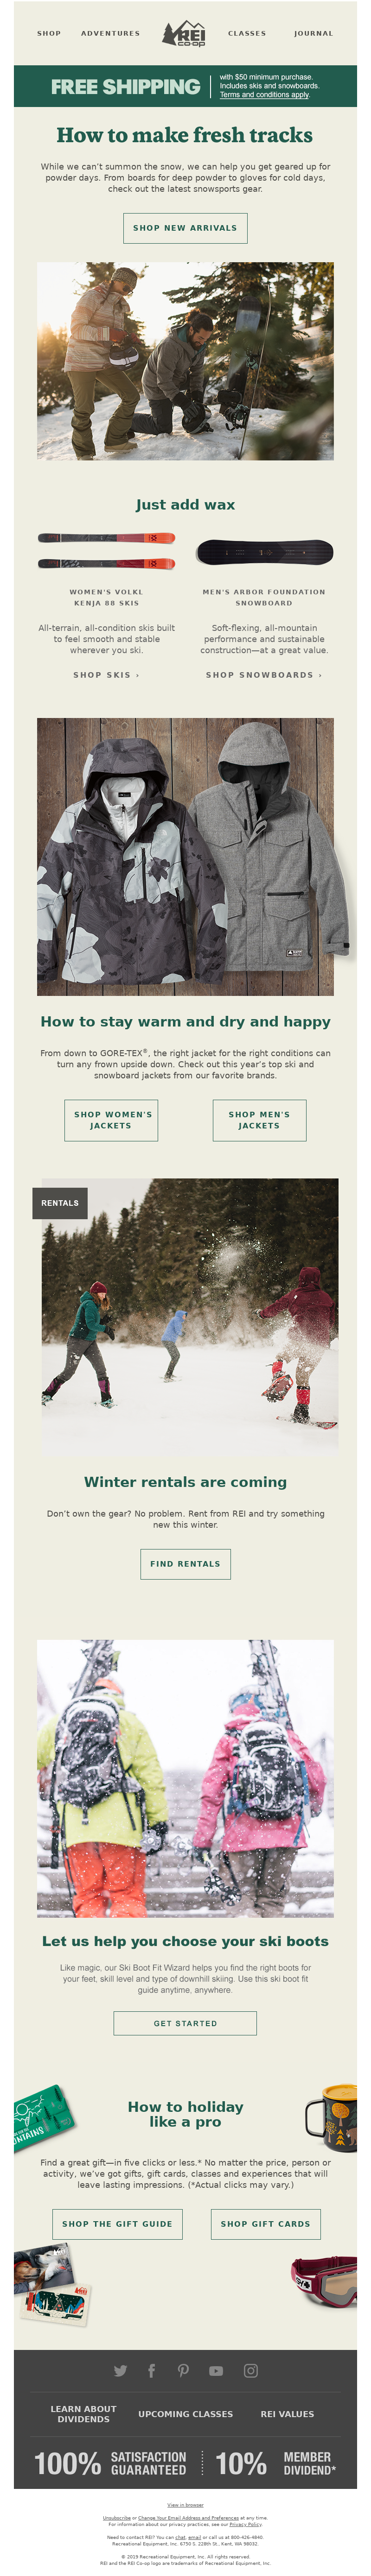 REI co-op FREE SHIPPING with $50 minimum purchase. Includes skis and snowbo